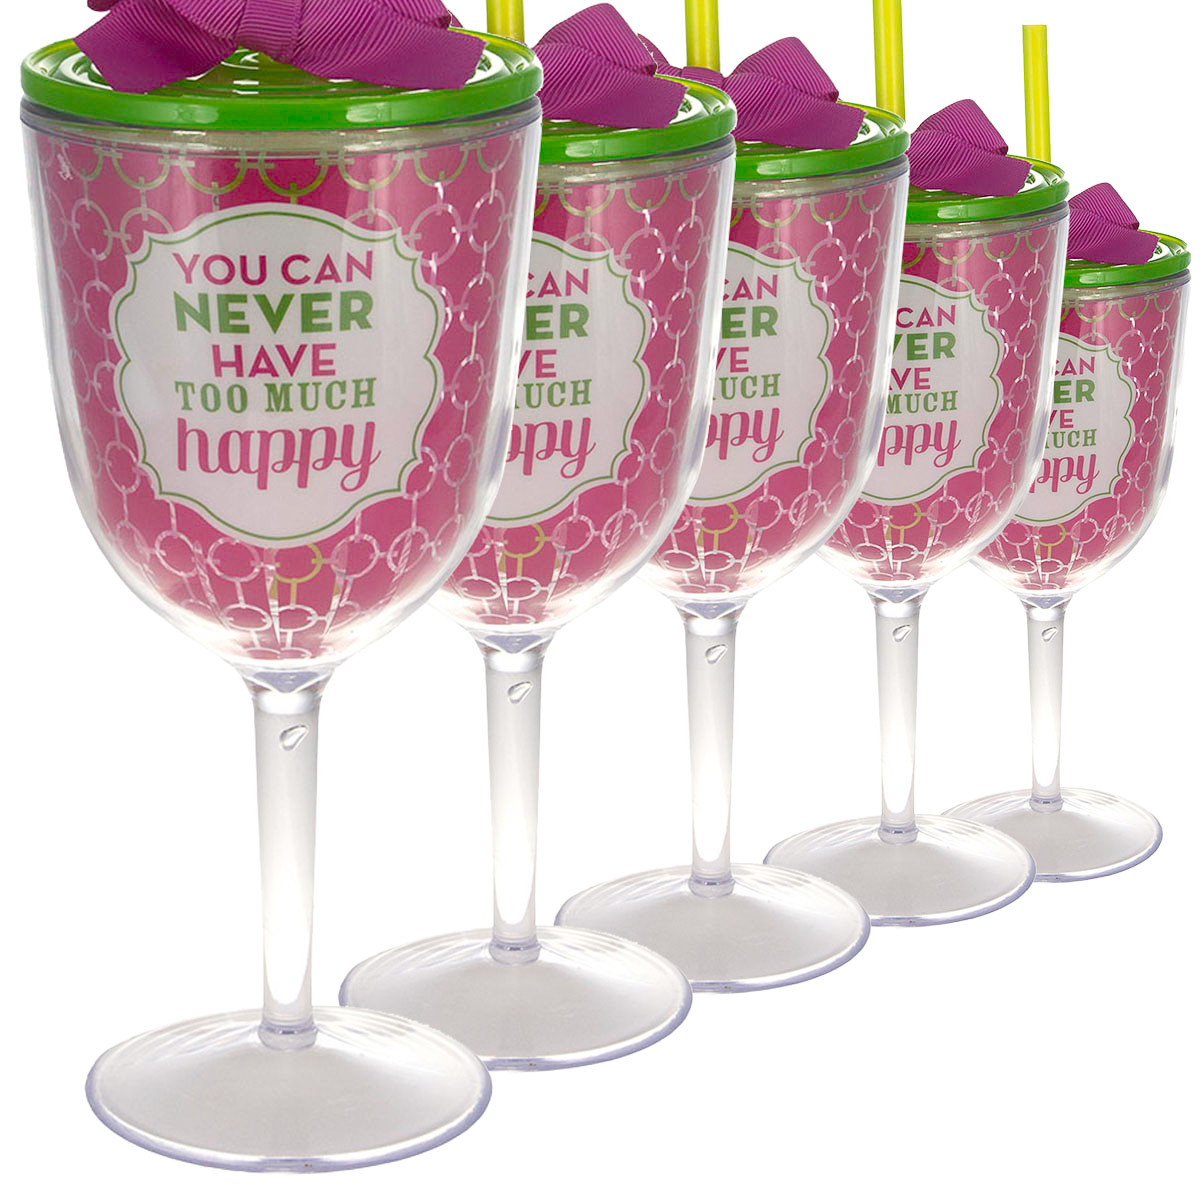 6ct Wine Glasses 13oz With Lid Straw Double Wall Insulated Funny Happiness Quote